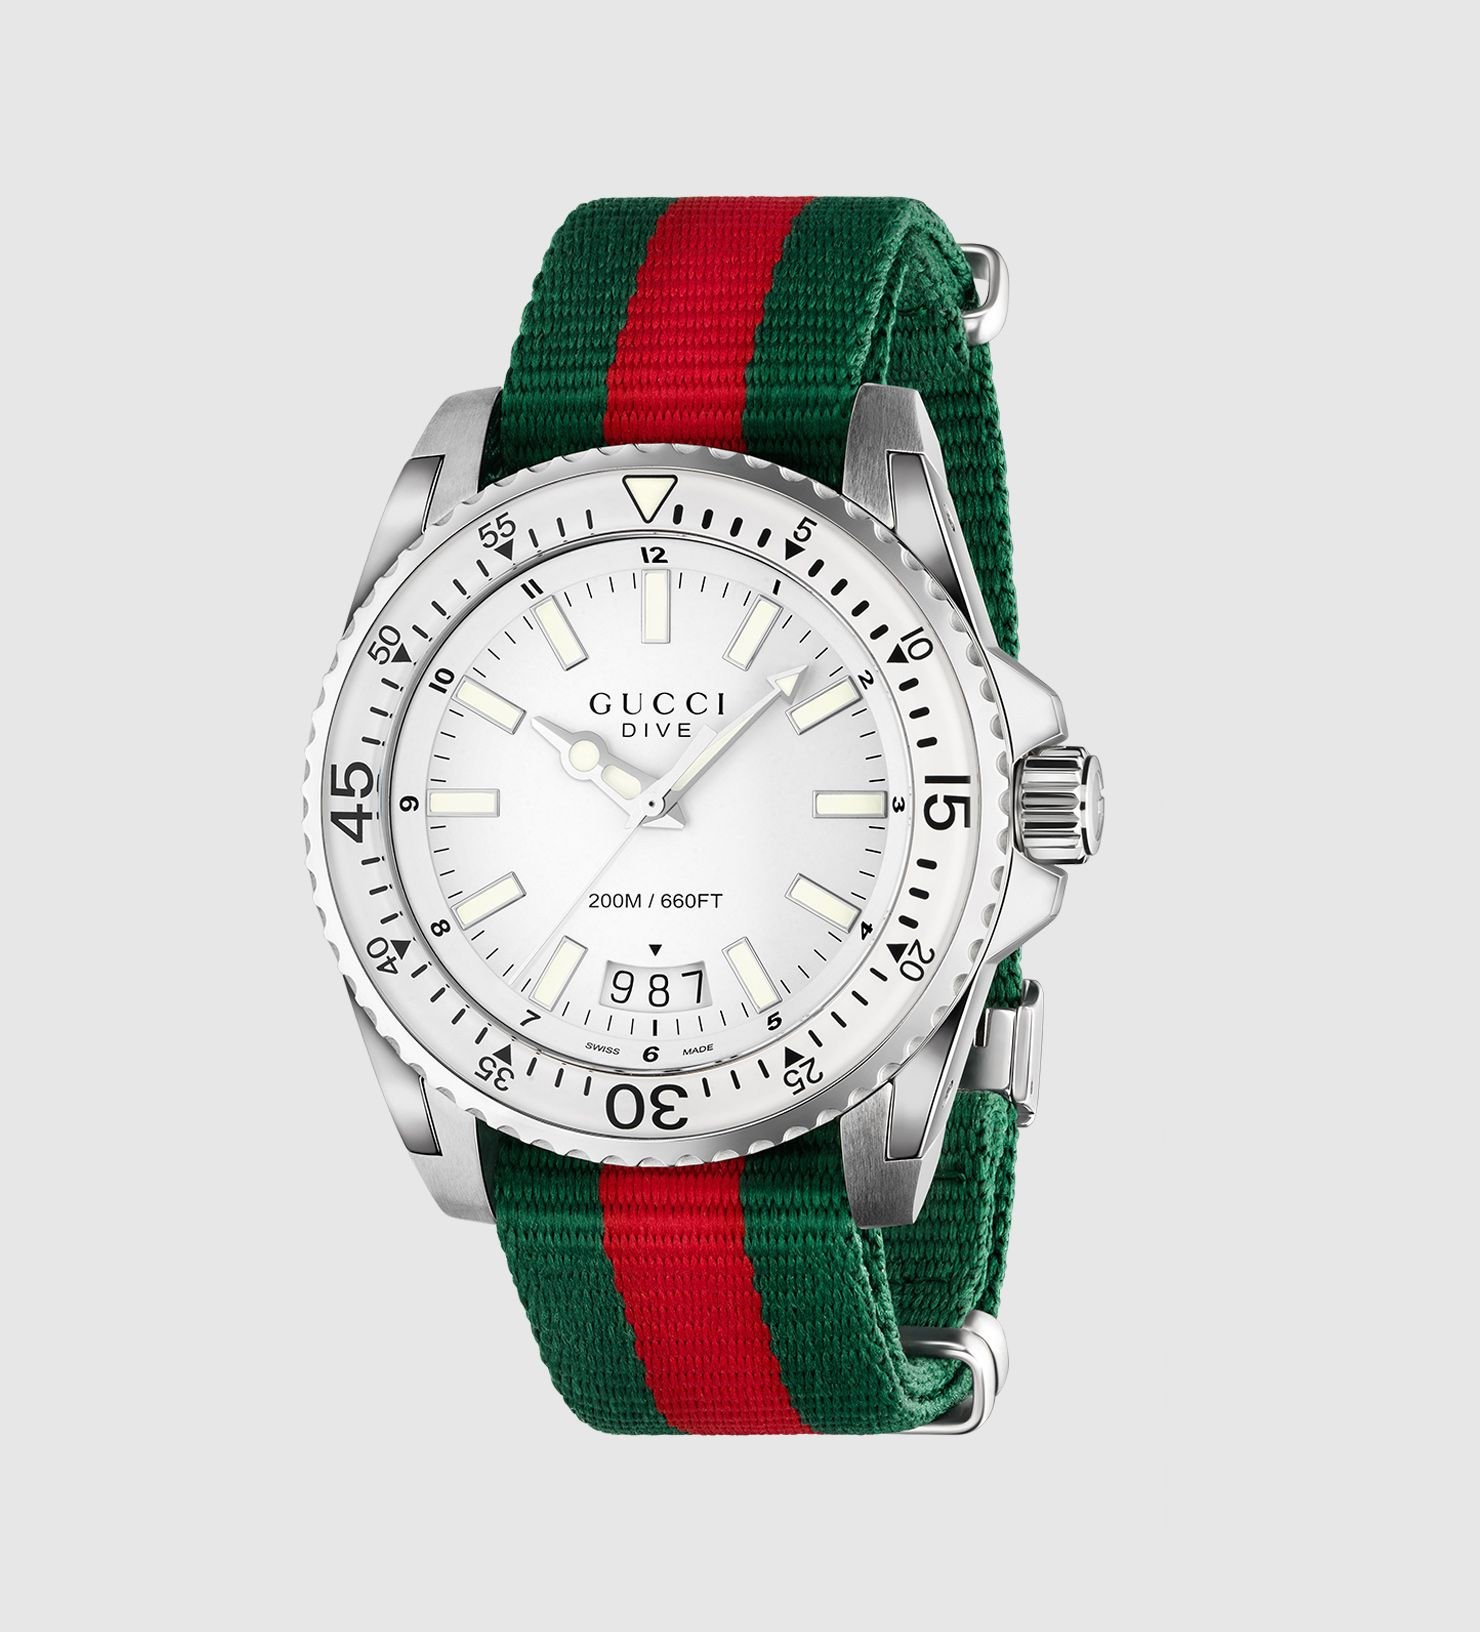 dd5a1bf5c0 Gucci - g-timeless collection. extra large SPORT version. 271288I18209000    watch this!   Gucci watch, Stylish watches, Watches for men